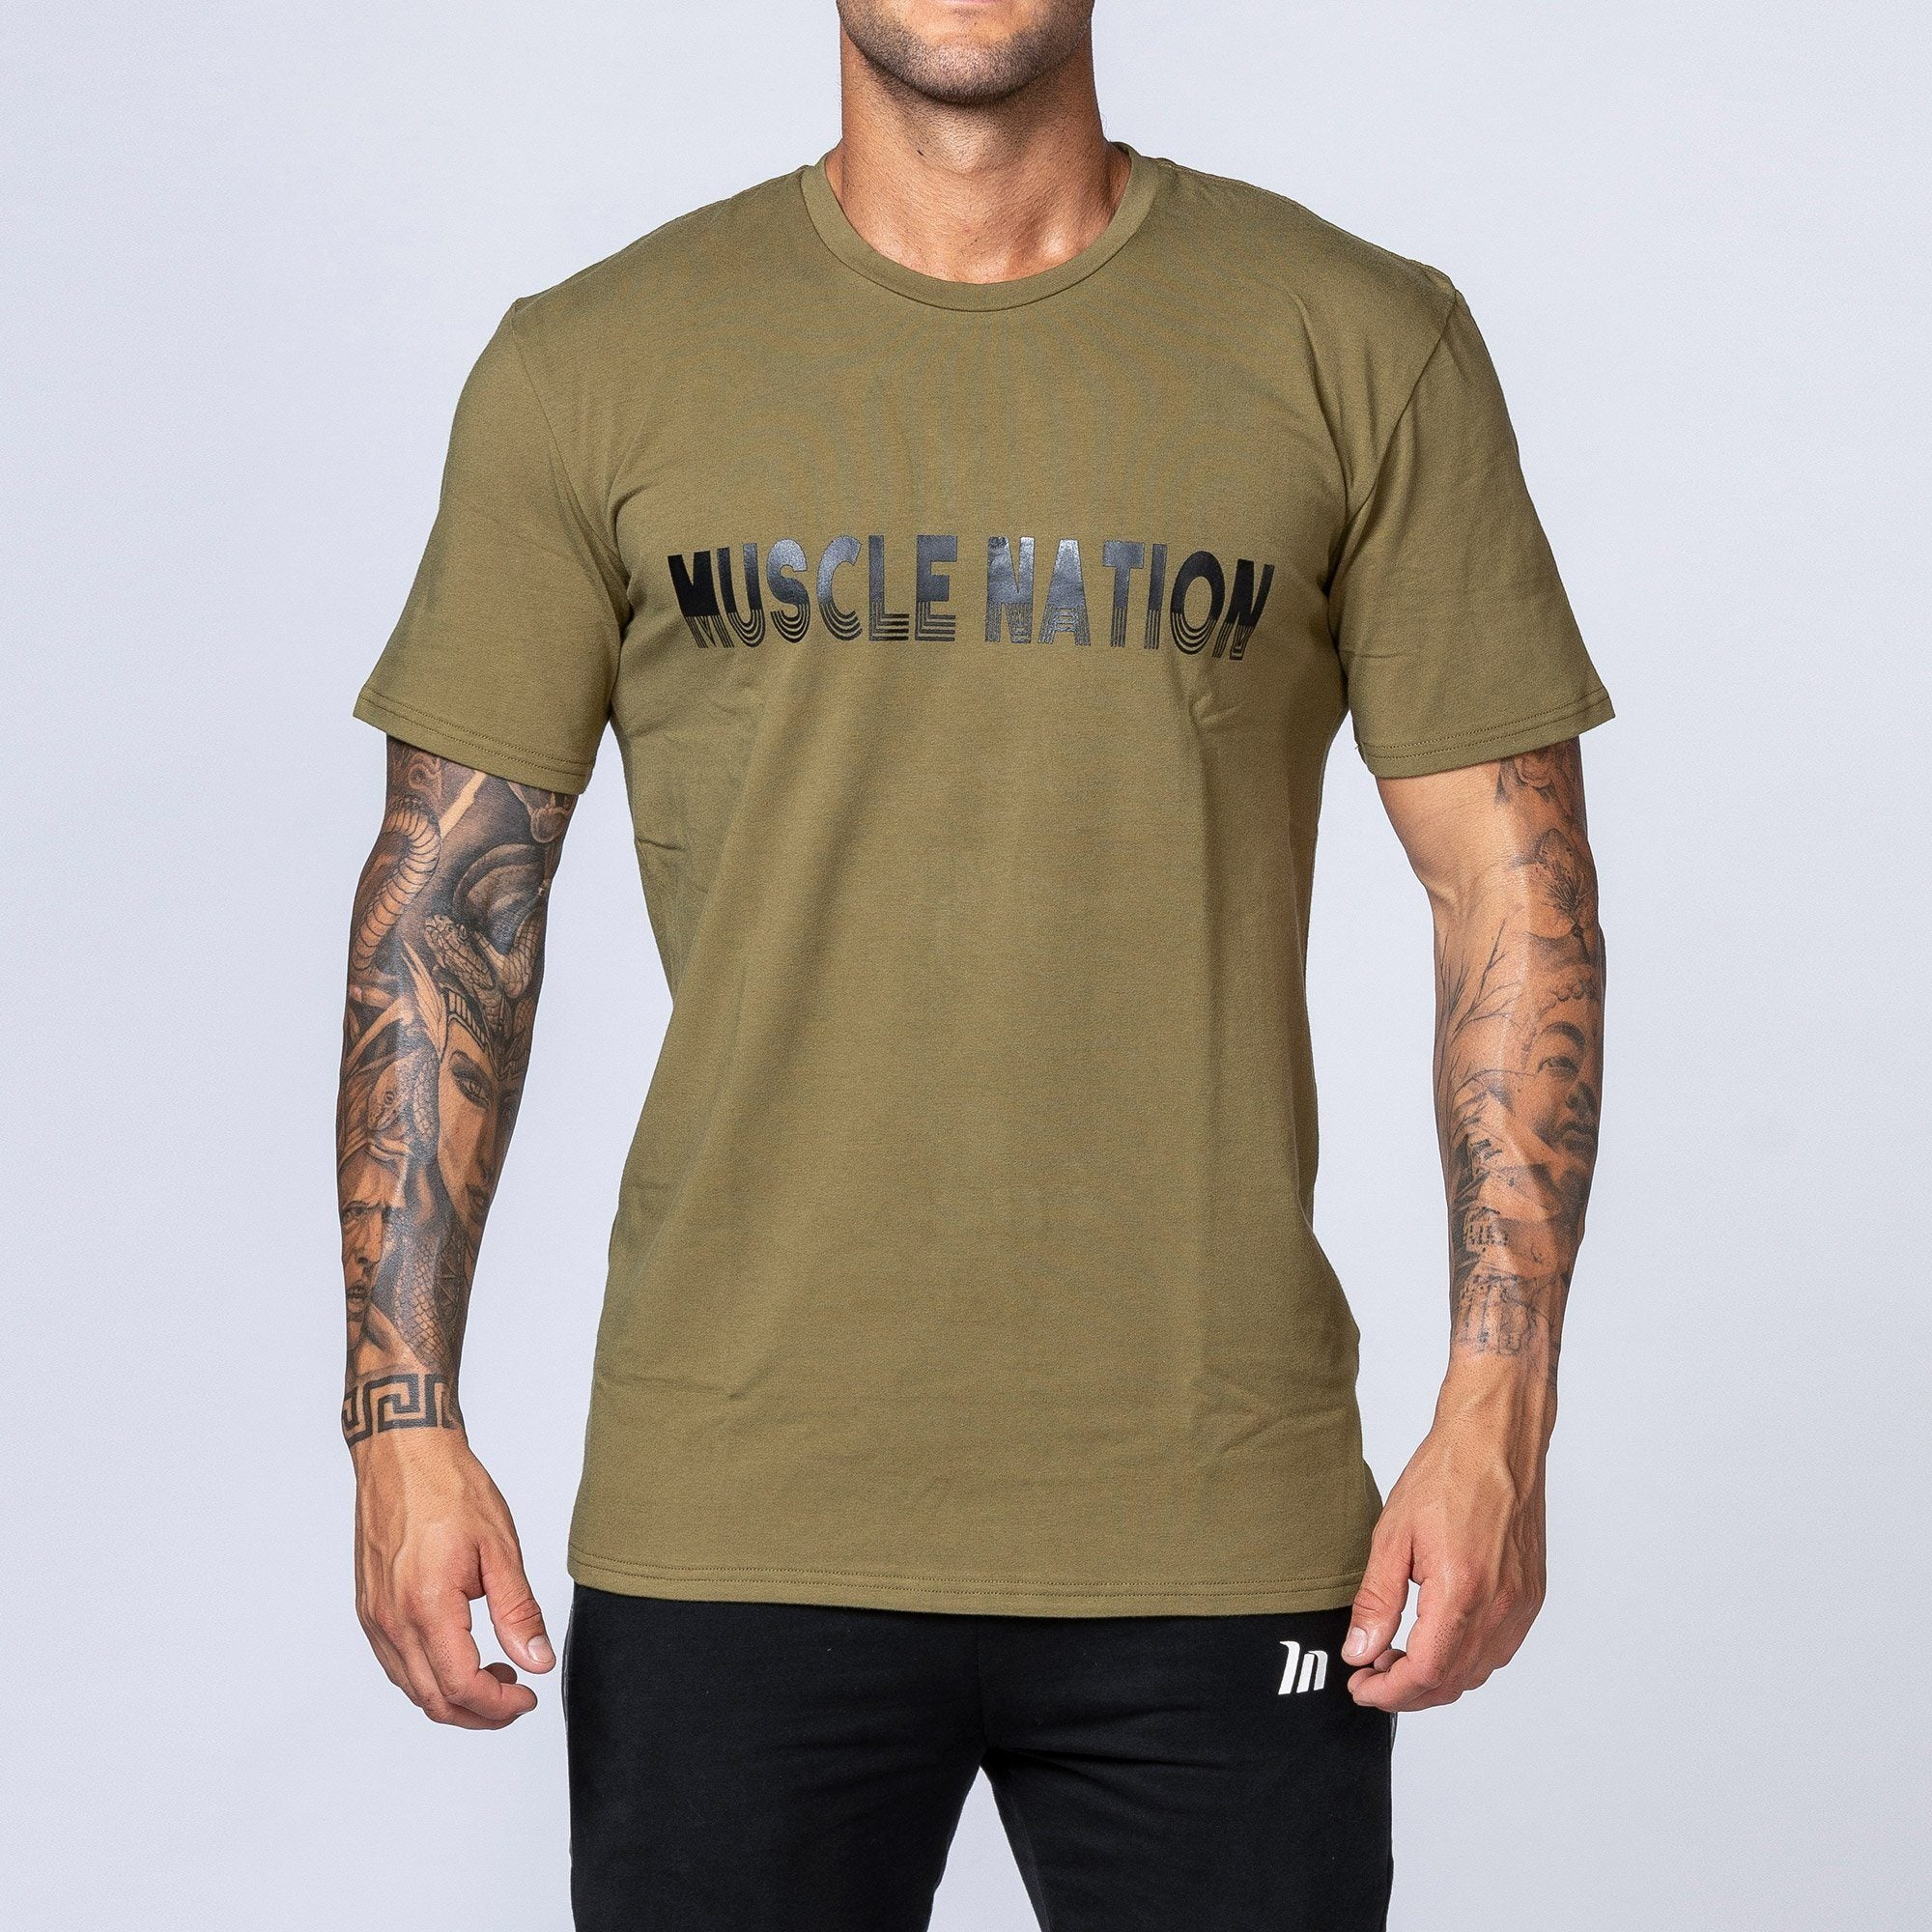 Muscle Nation Retro Tee - Khaki